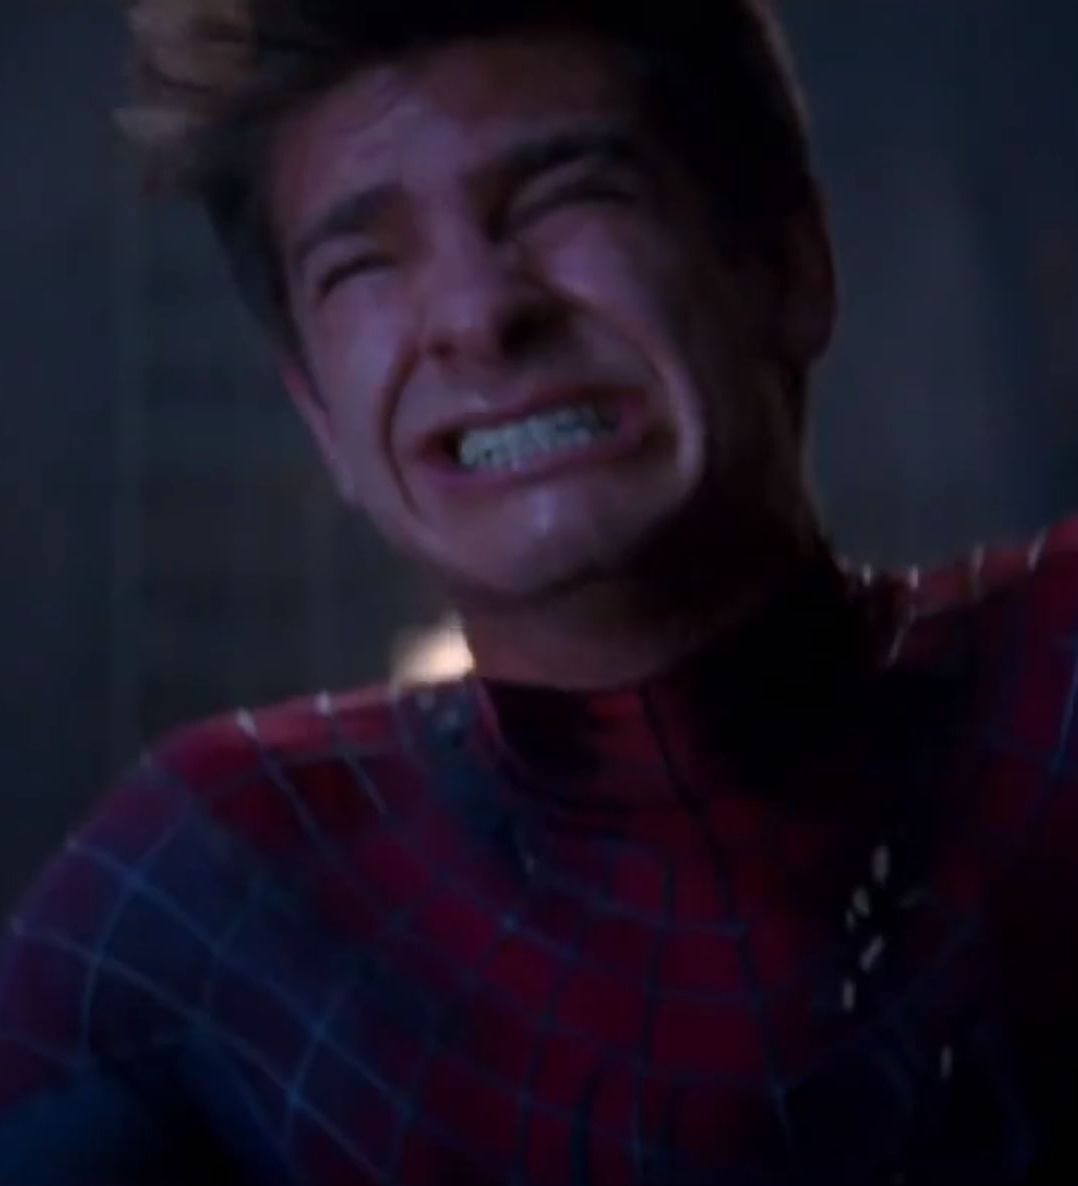 spidey cry 27 Things You Didn't Know About The Spider-Man Films